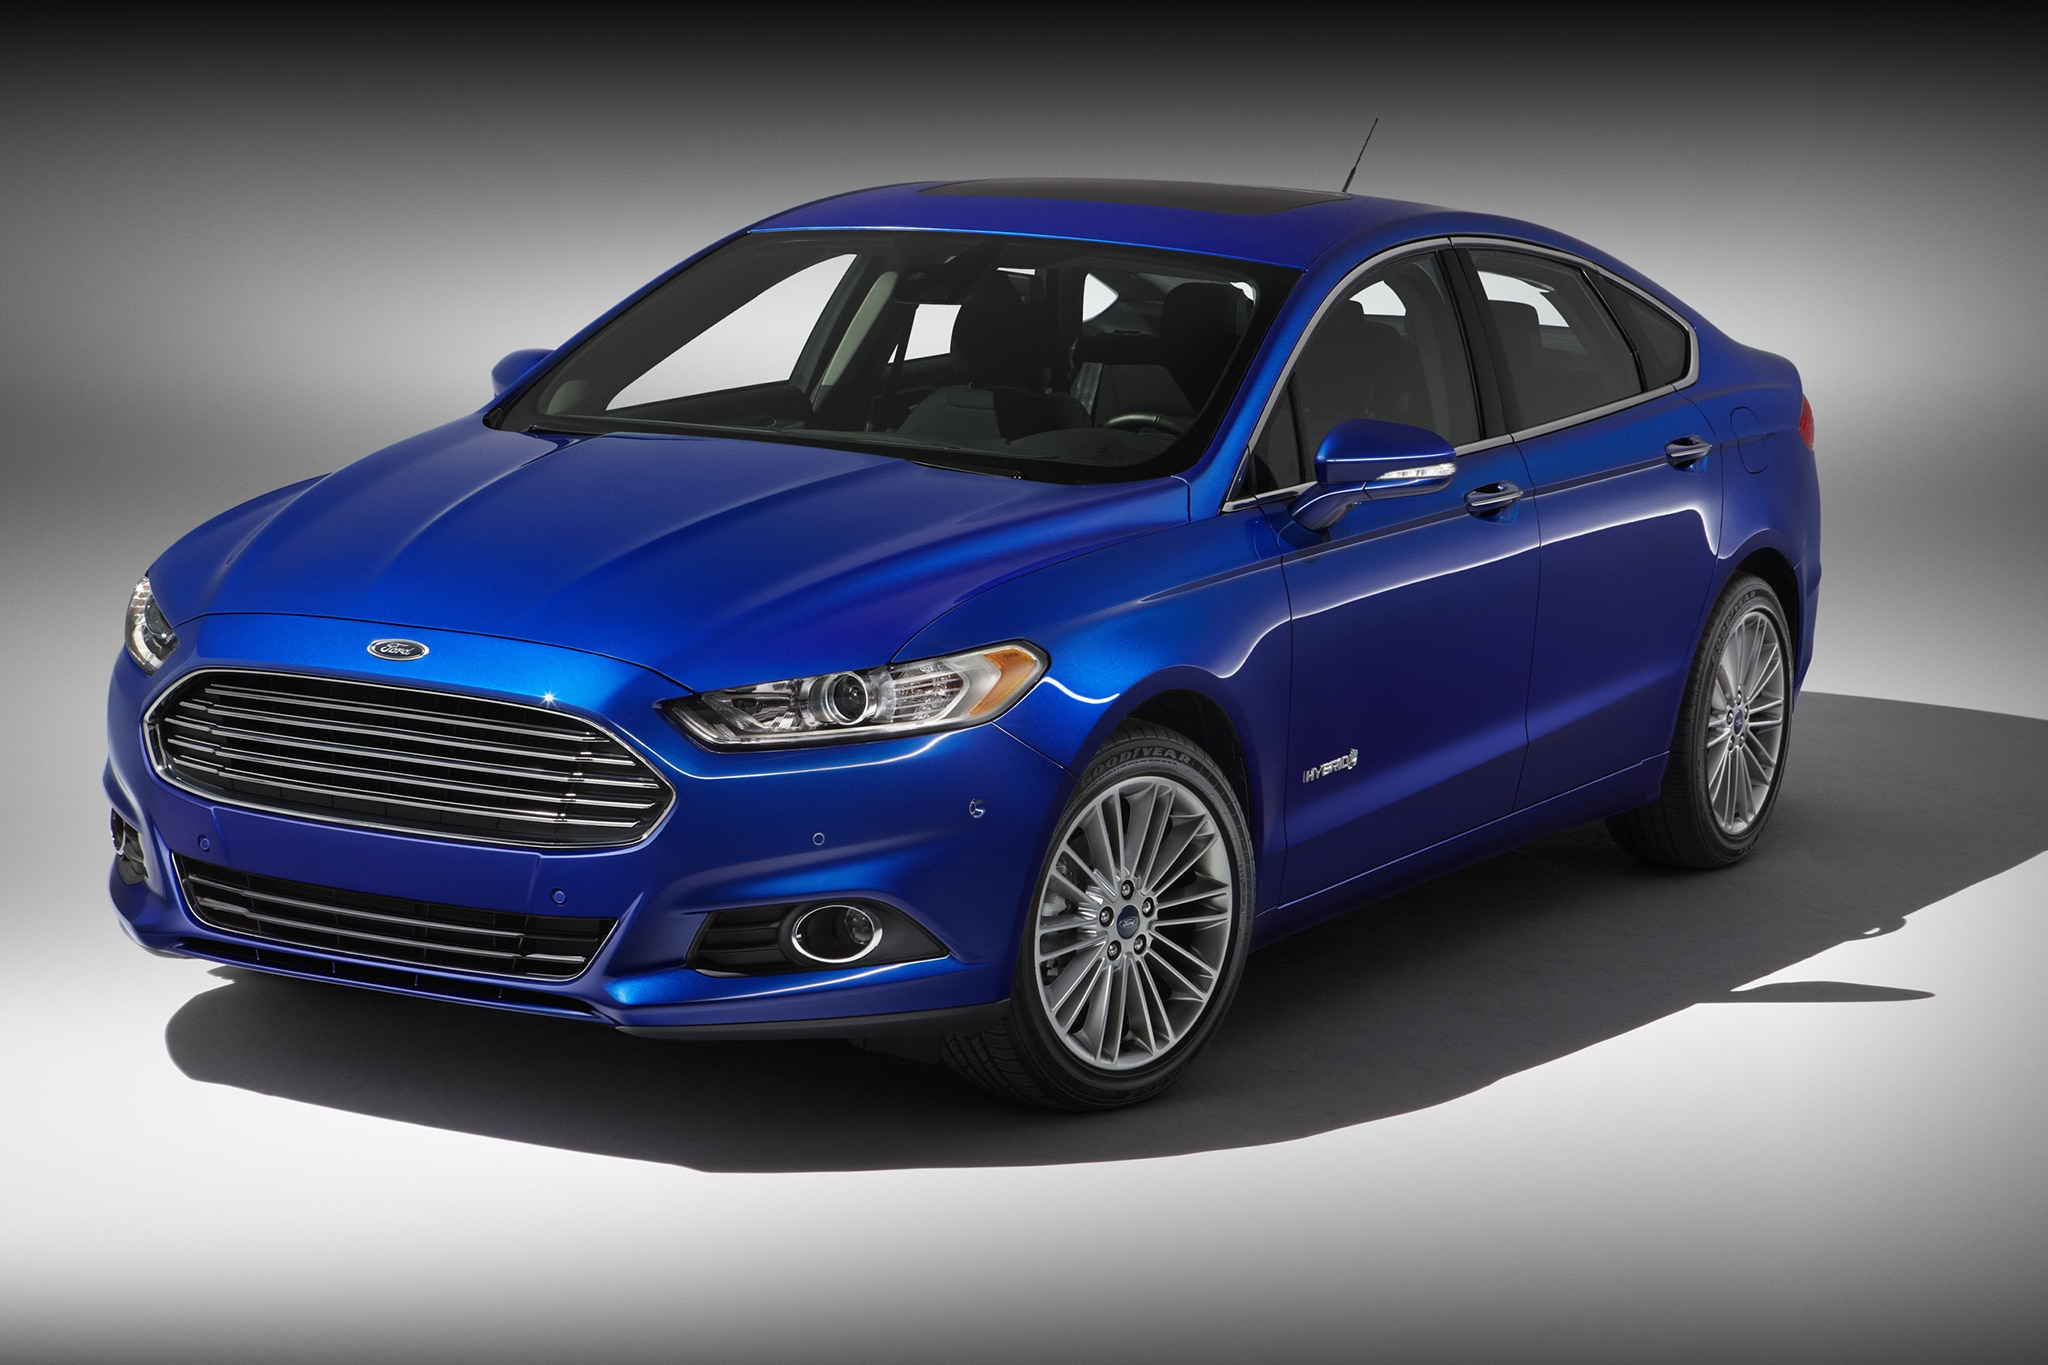 2014 Ford Fusion Hybrid Three Quarters View 11